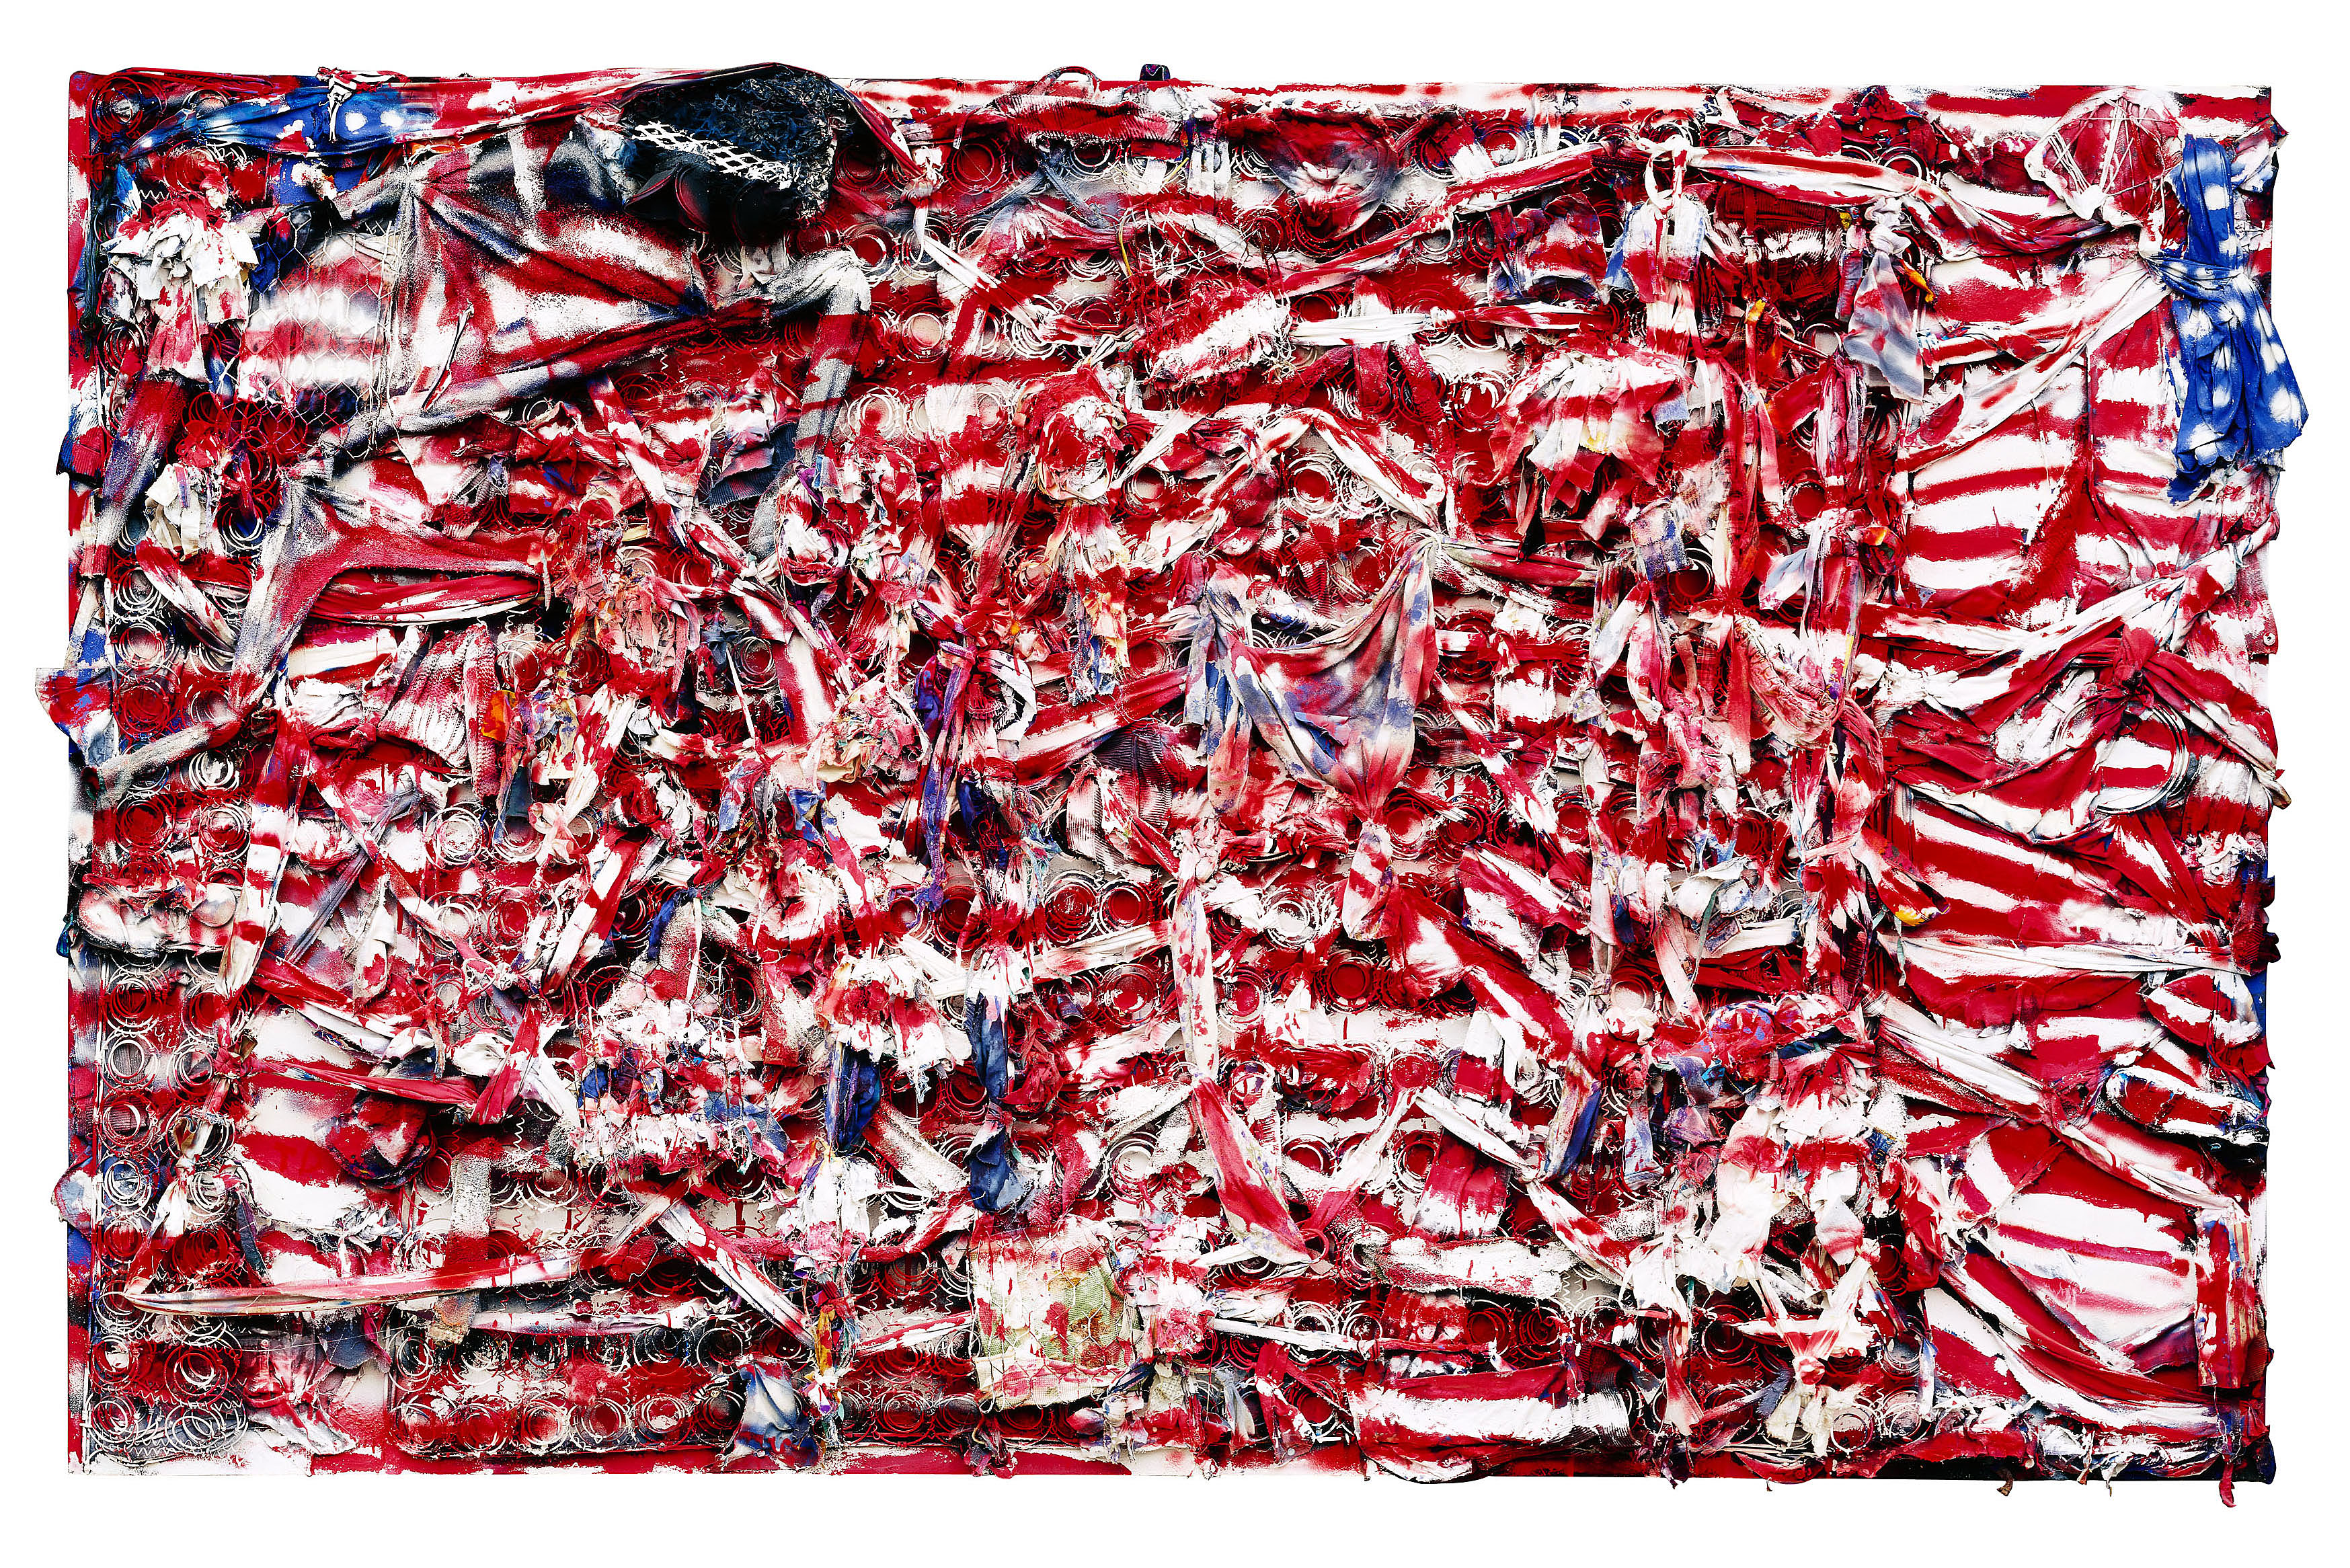 """""""Don't Matter How Raggly The Flag, It Still Got To Tie Us Together,"""" 2003. © Thornton Dial, image by Stephen Pitkin/Pitkin Studio. Collection of the Indianapolis Museum of Art"""